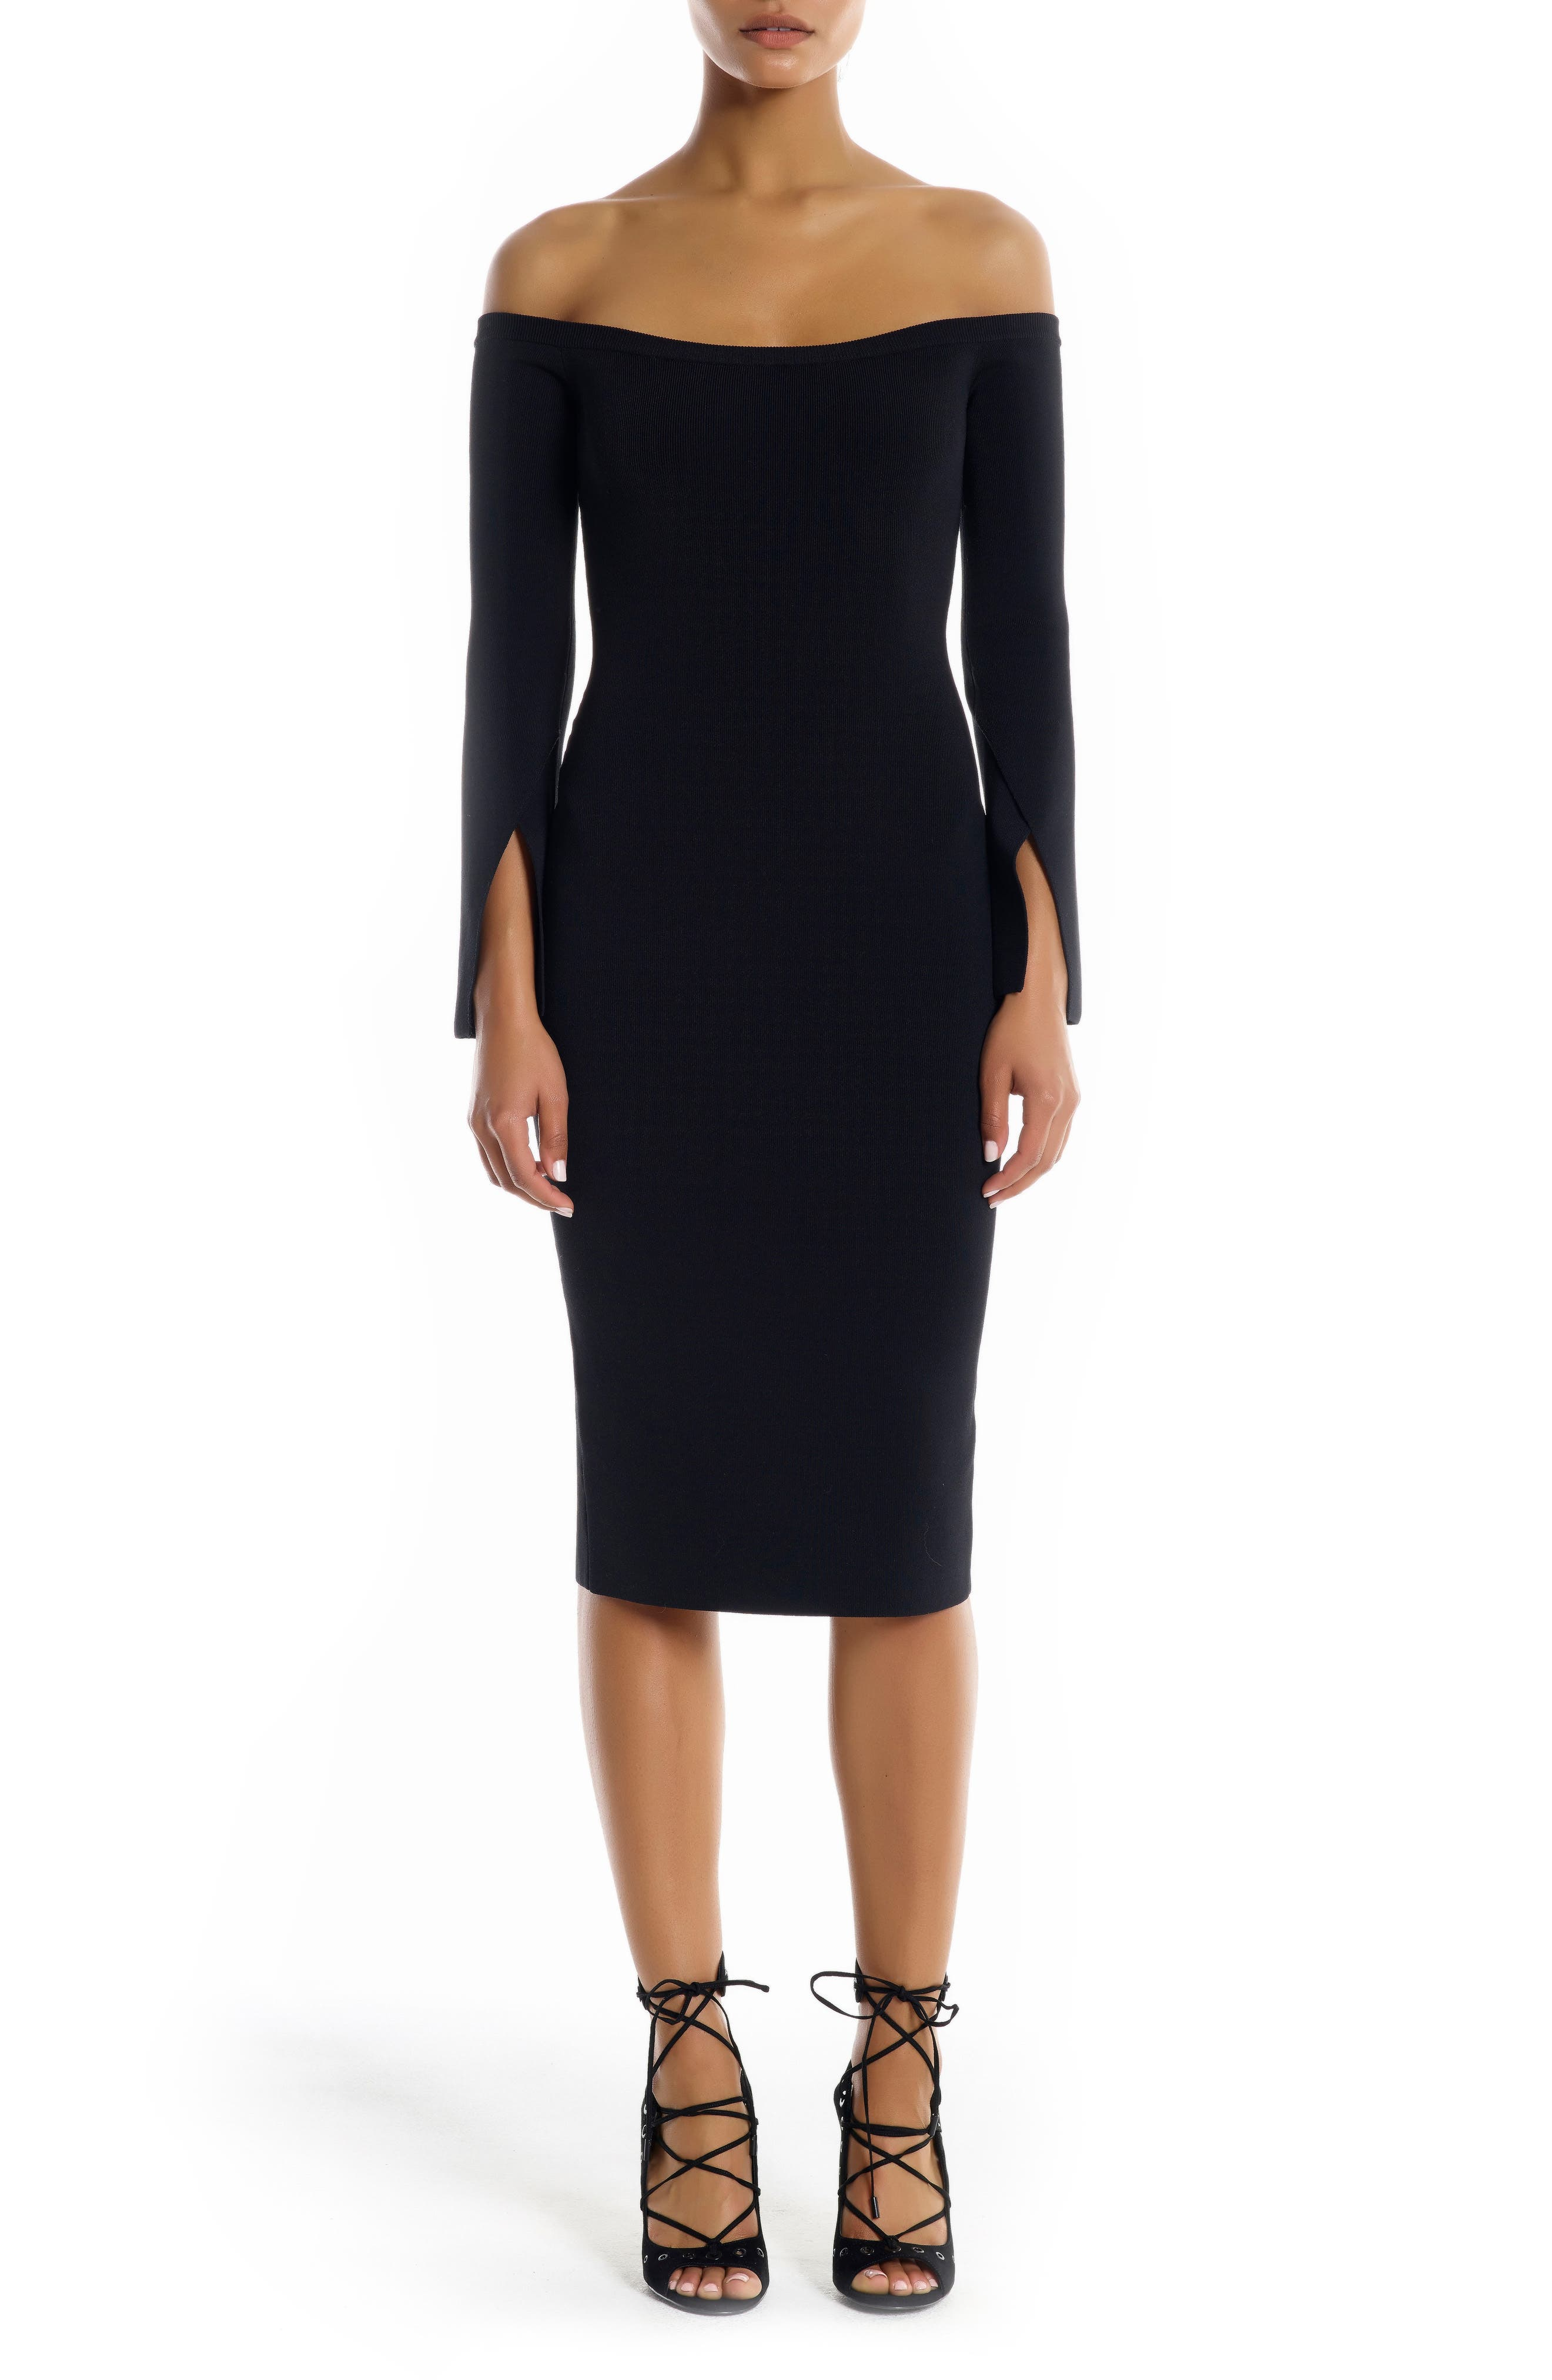 Main Image - KENDALL + KYLIE Off the Shoulder Body-Con Dress